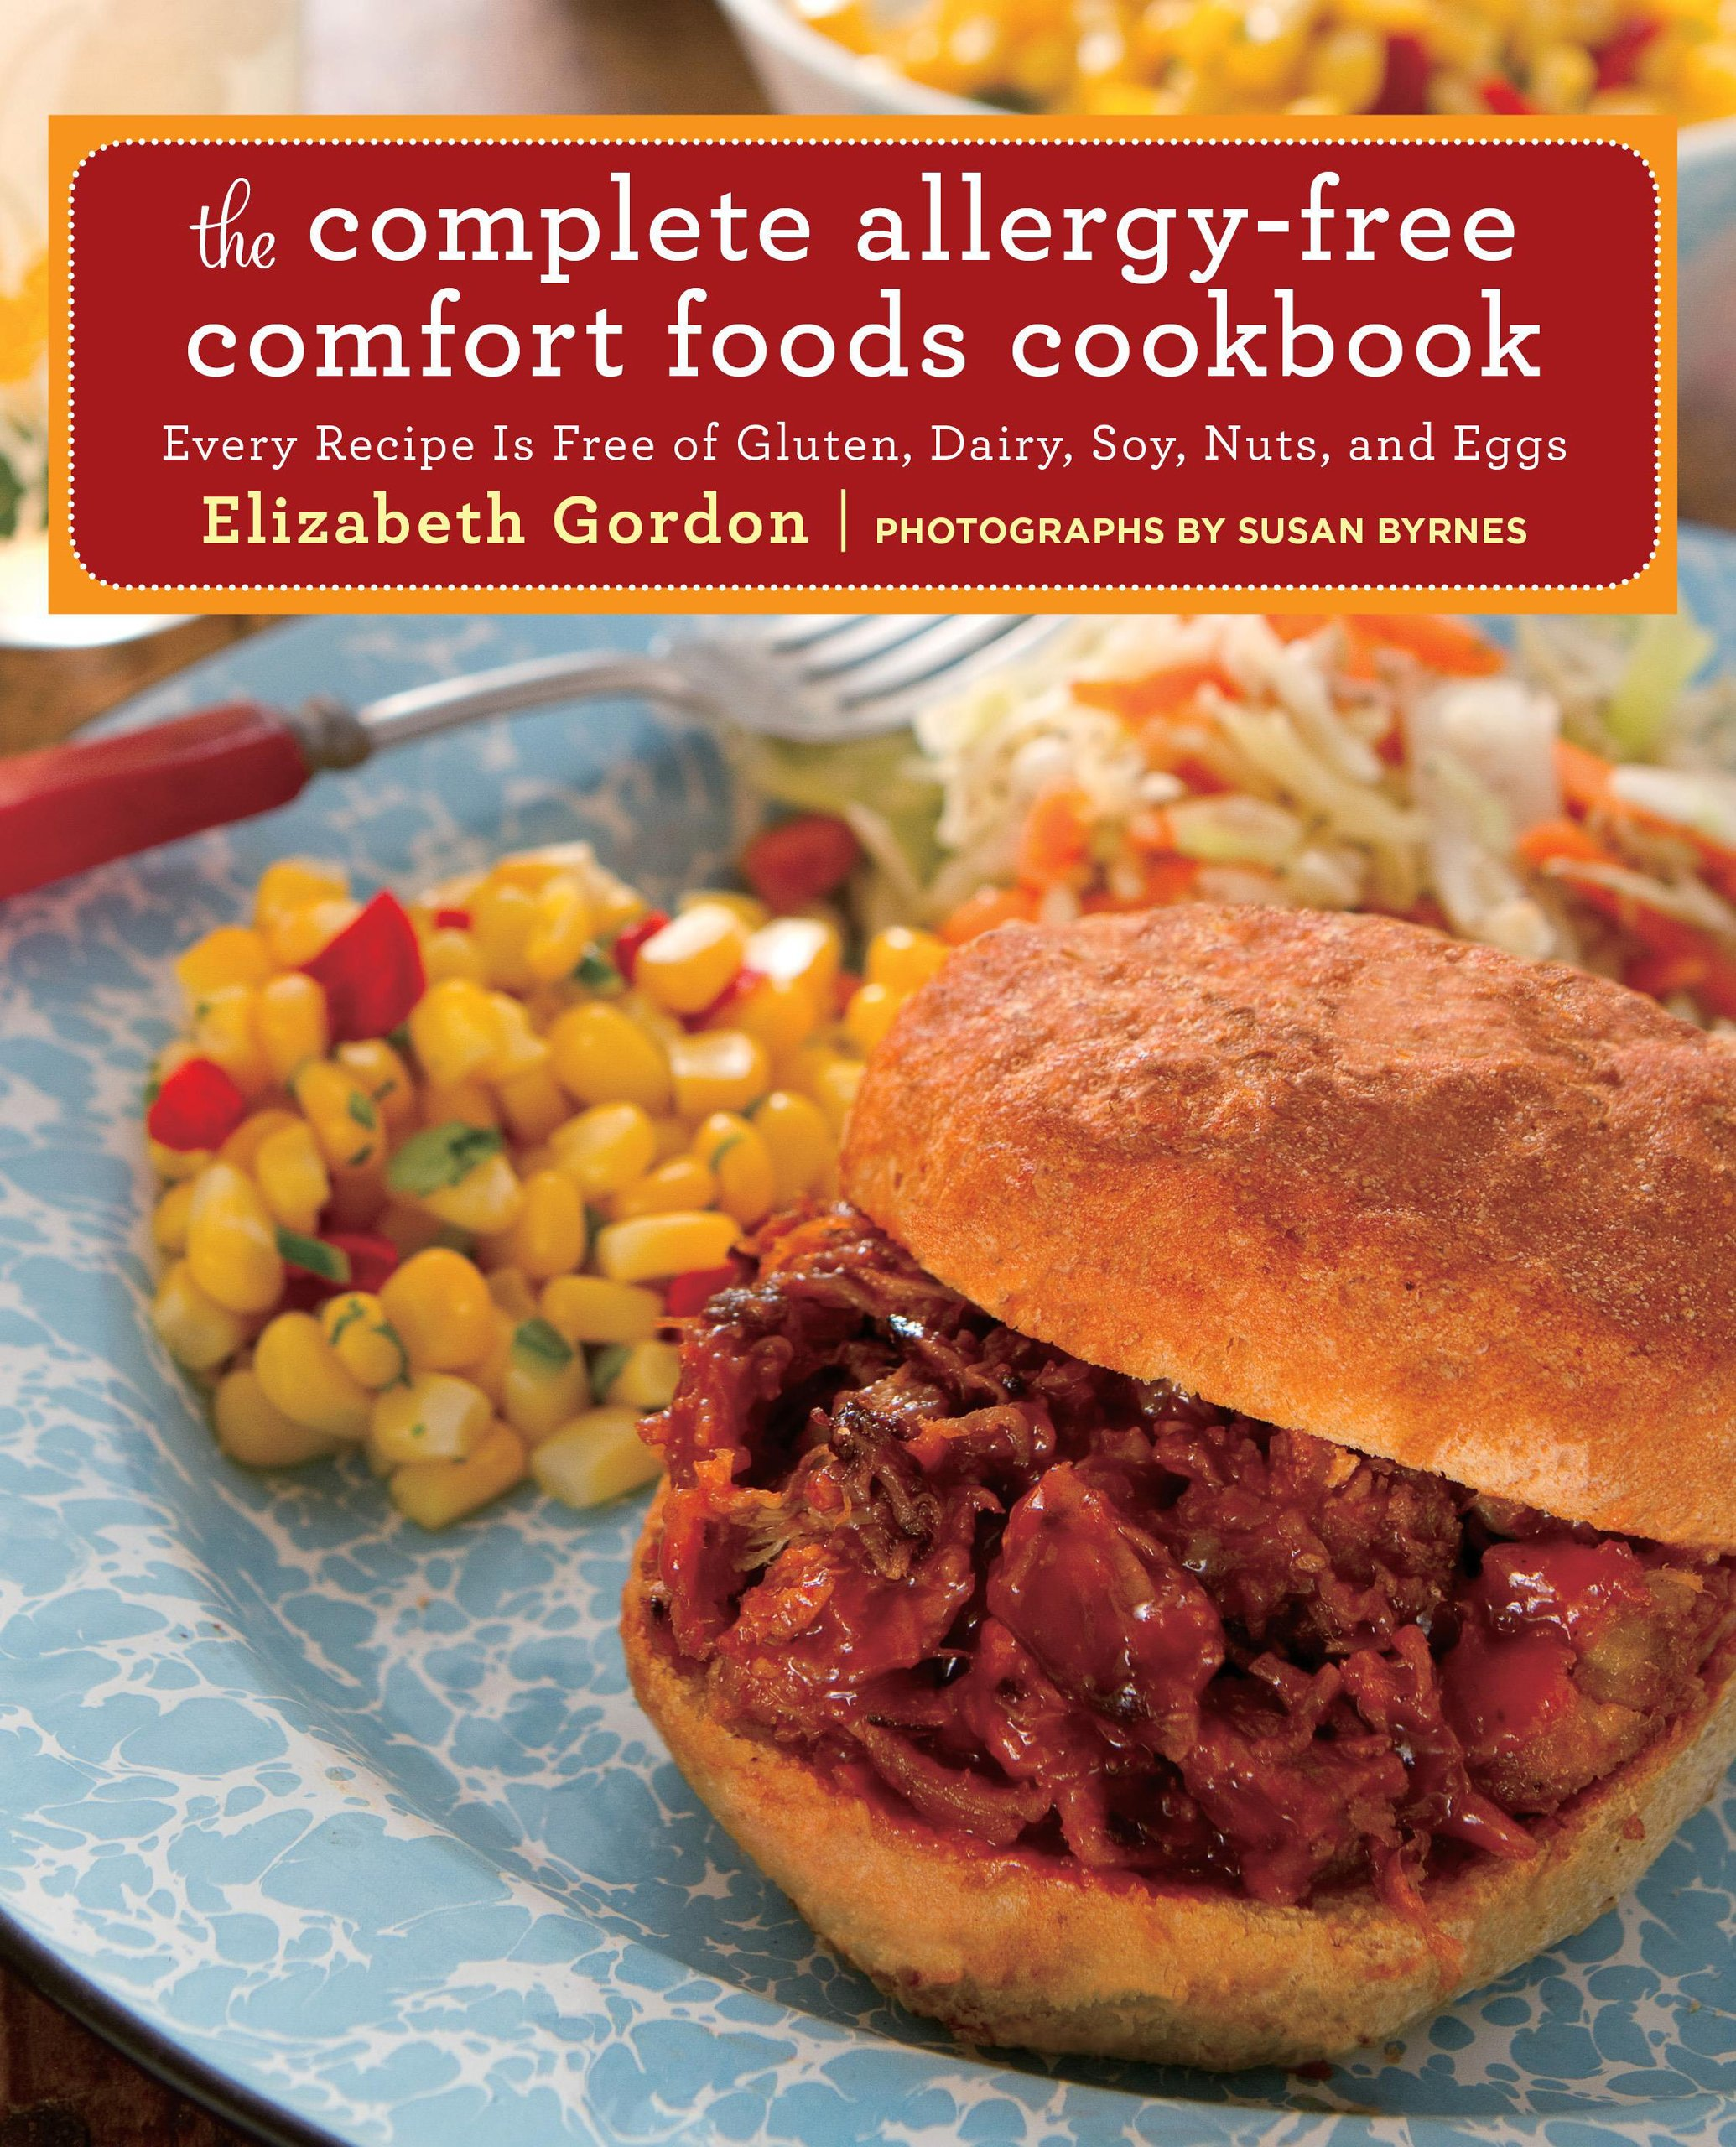 Complete Allergy Free Comfort Foods Cookbook product image